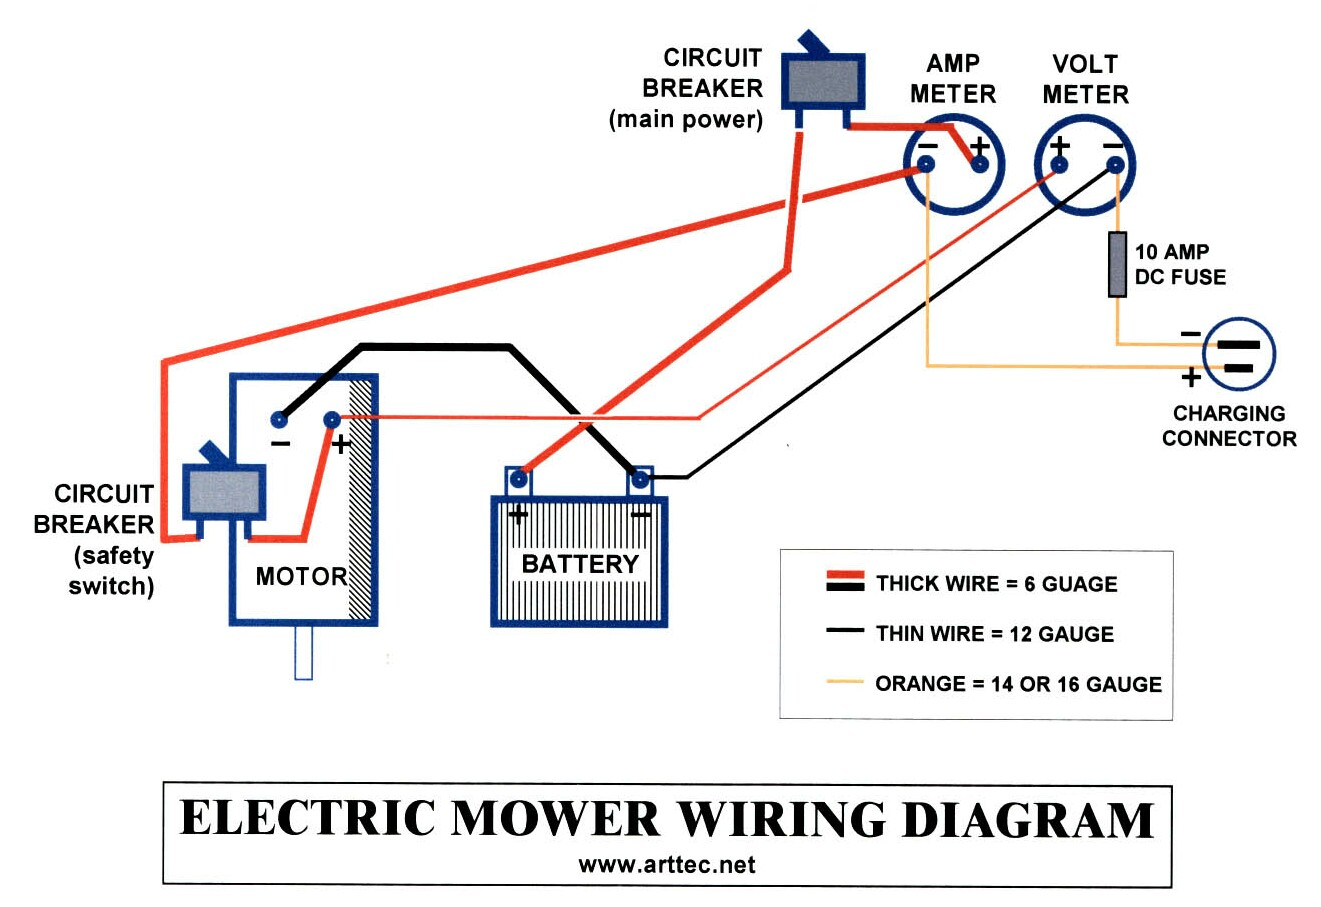 murray riding lawn mower wiring diagram murray lawn mower switch wiring diagram lawn wiring diagrams car on murray riding lawn mower wiring diagram